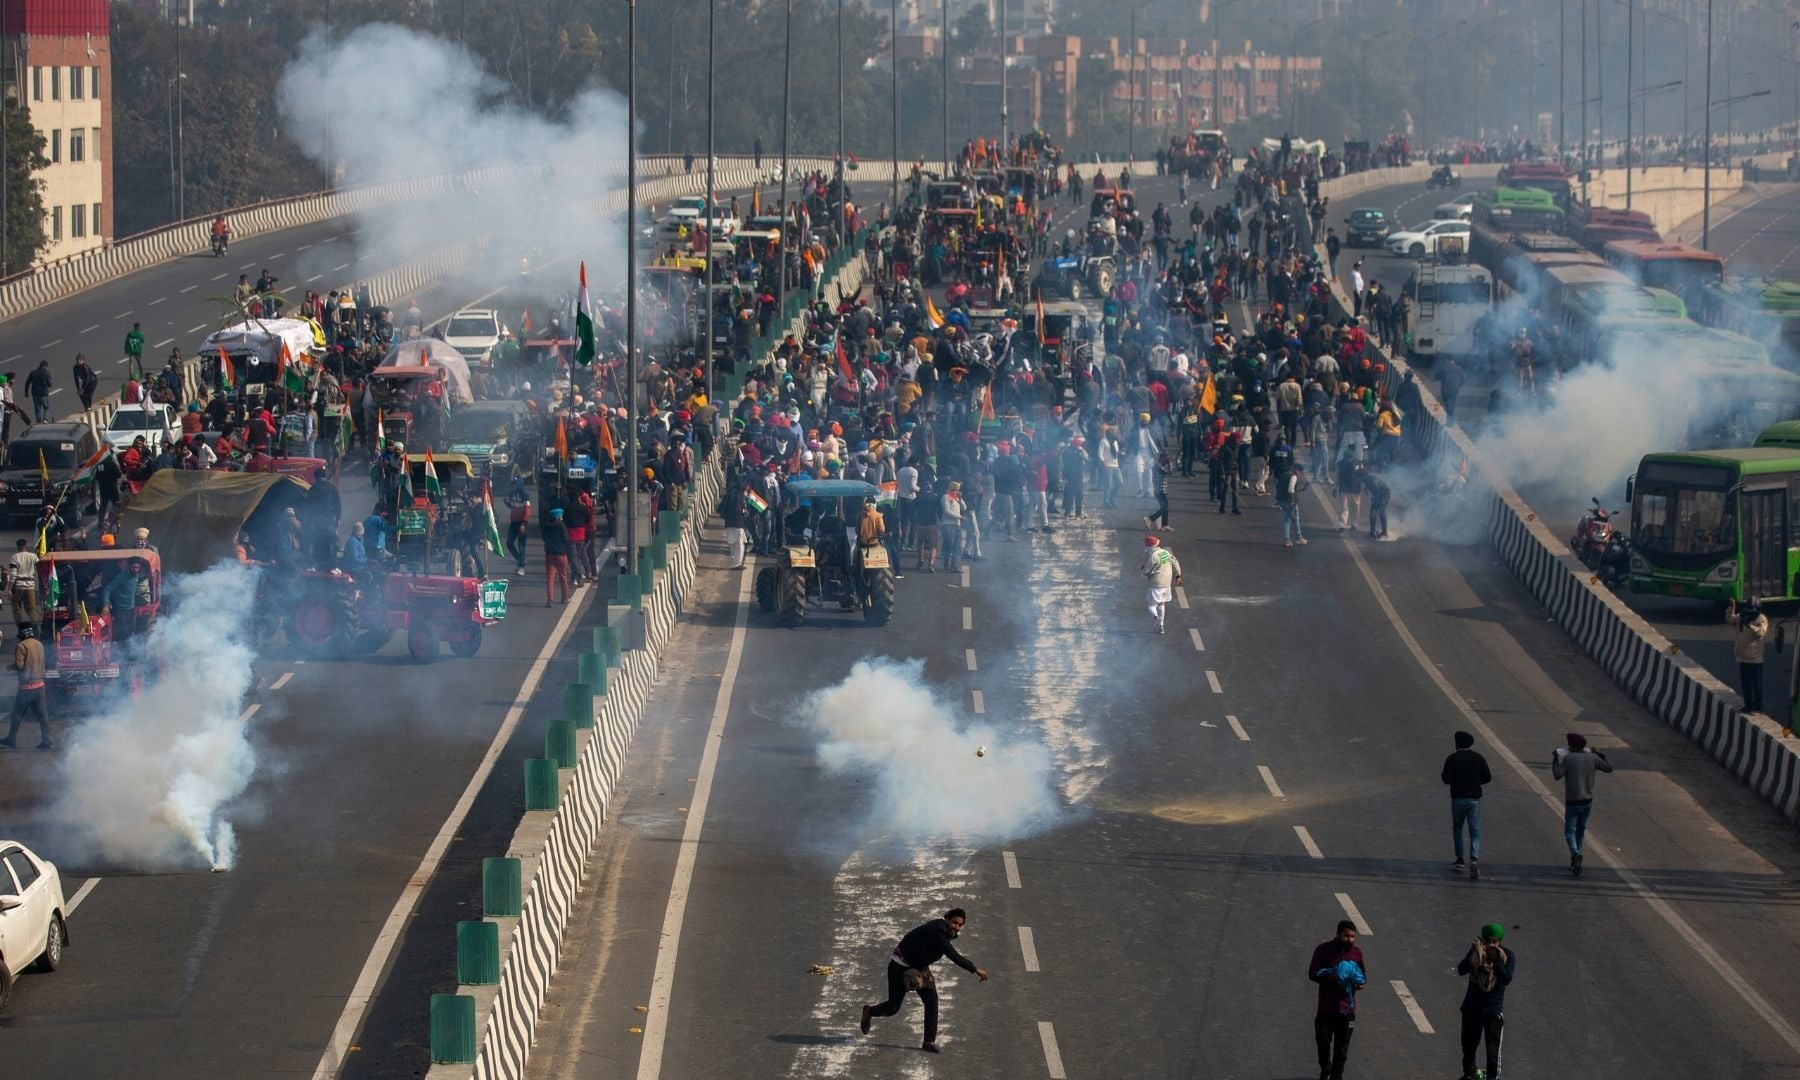 Protesting farmers hurl back tear gas shell as they march to the capital, breaking police barricades, during India's Republic Day celebrations in New Delhi on Jan 26.